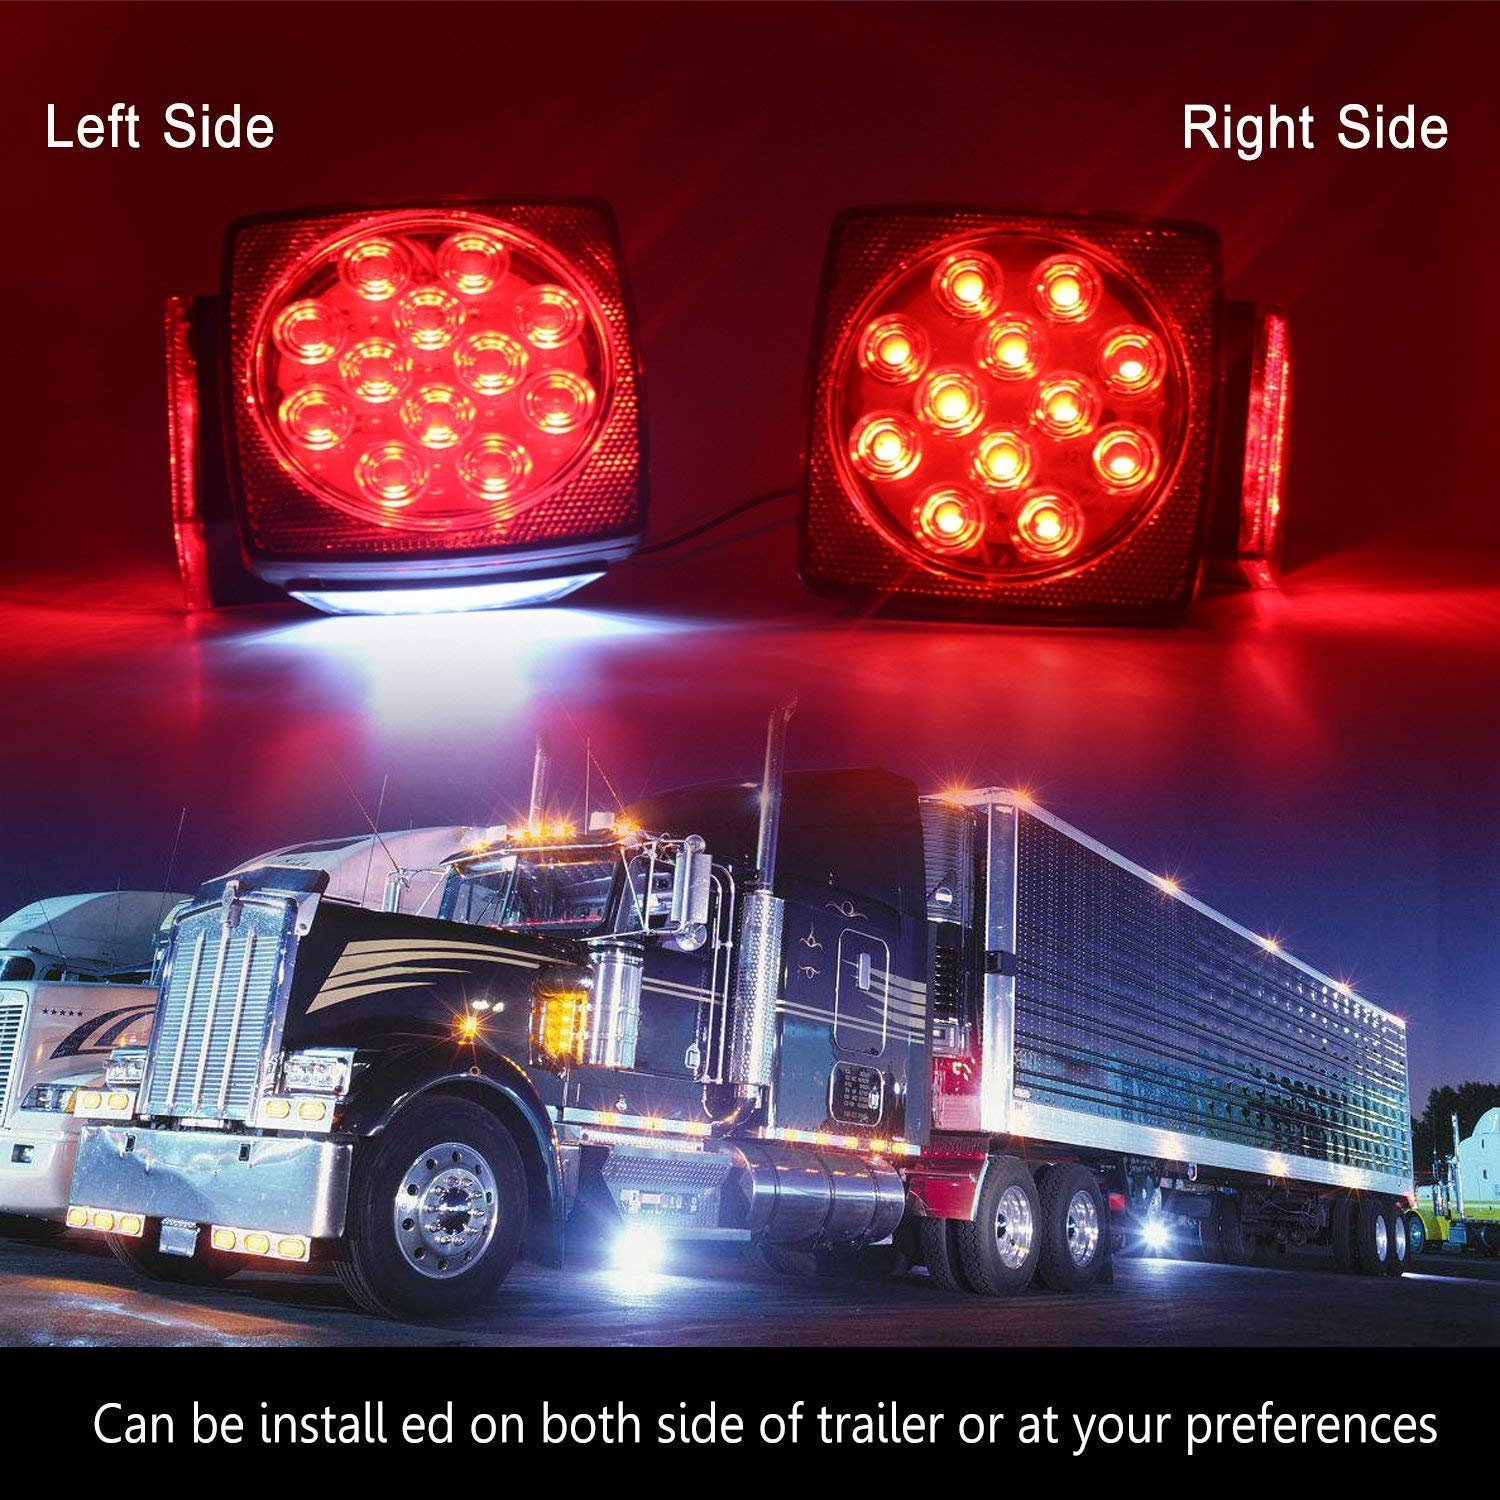 12v Led Trailer Light Kit Lontime Submersible Tail Lights Red Wiring To Vehicle White Waterproof Boat